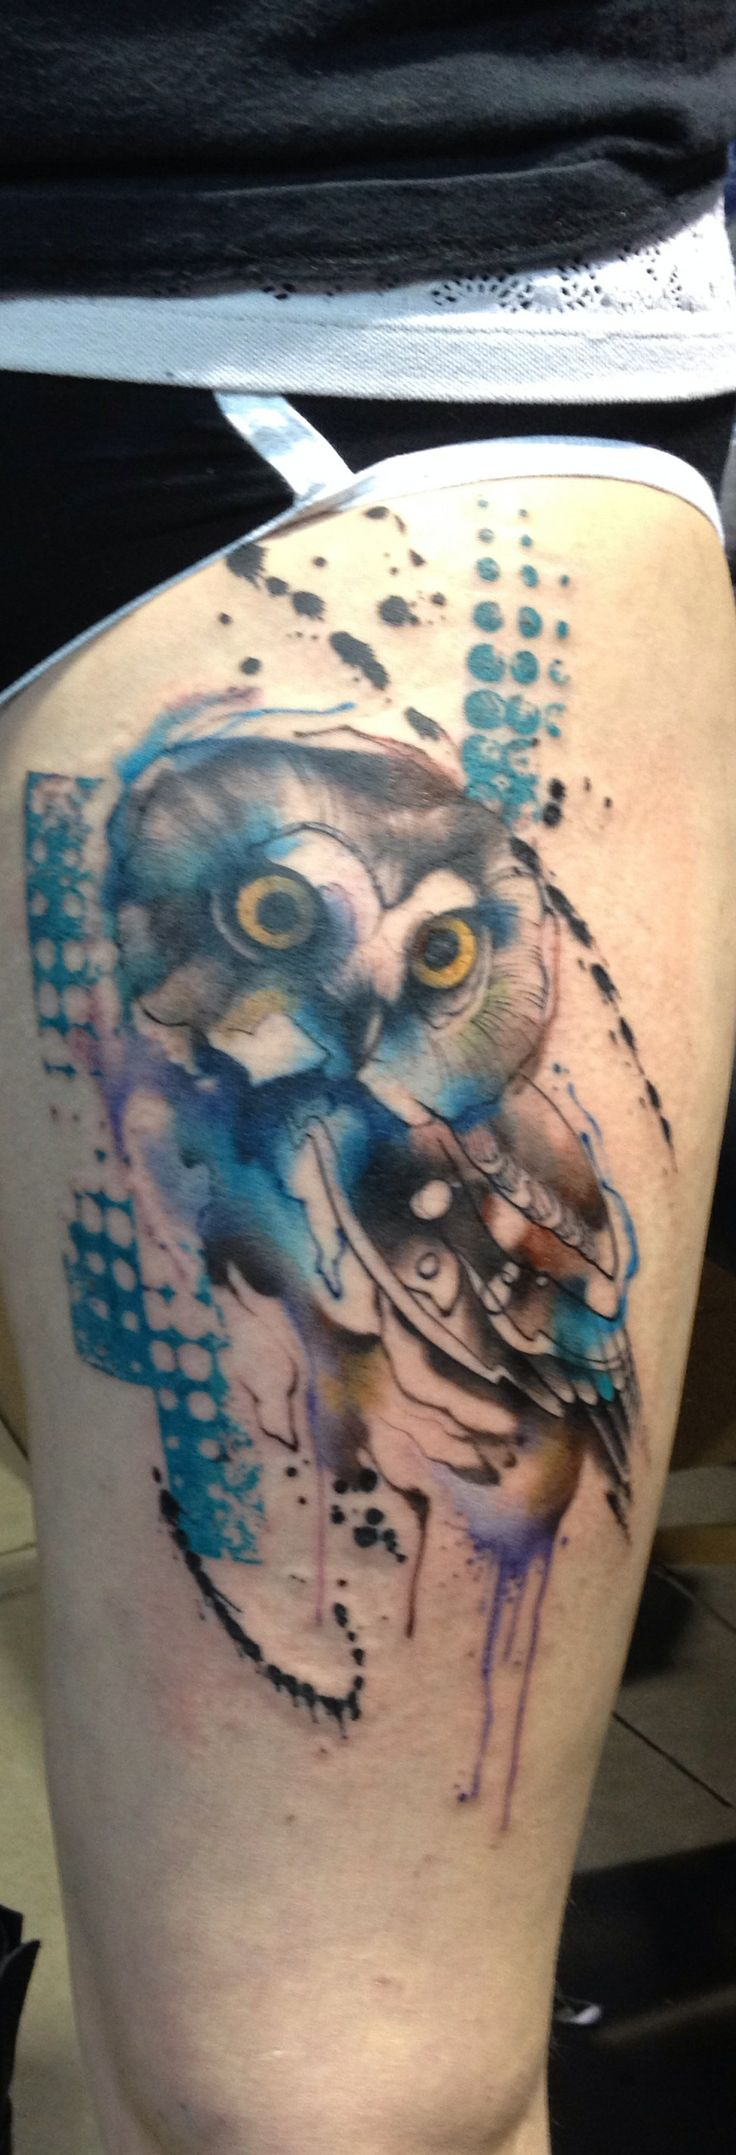 New ink from Philadelphia tattoo convention 2/2/14 by Jay Freestyle from Amsterdam   If you repin please give credit to Jay.